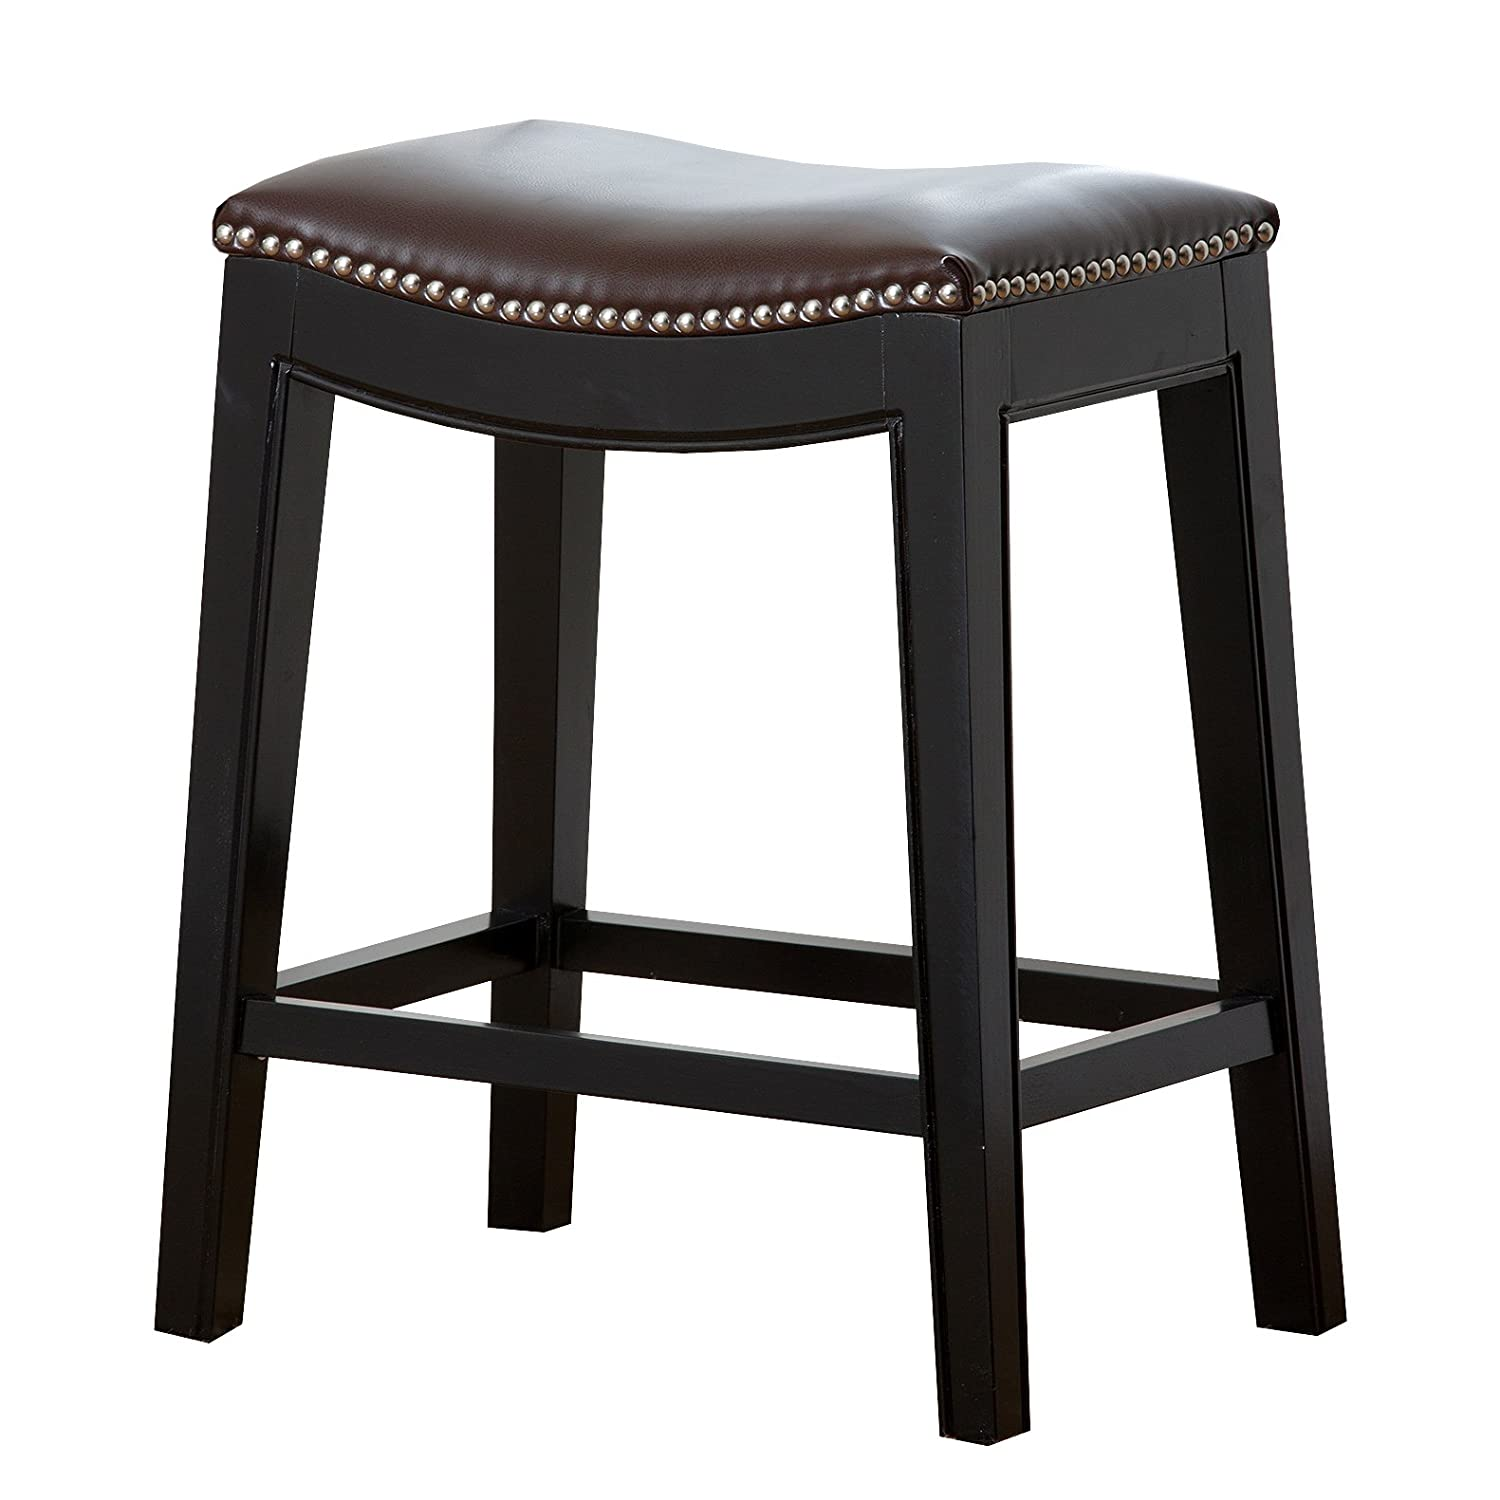 Black Leather Counter Stools Part - 25: Amazon.com: Abbyson Paula Leather Nailhead Trim Counter Stool, Dark Brown:  Home U0026 Kitchen